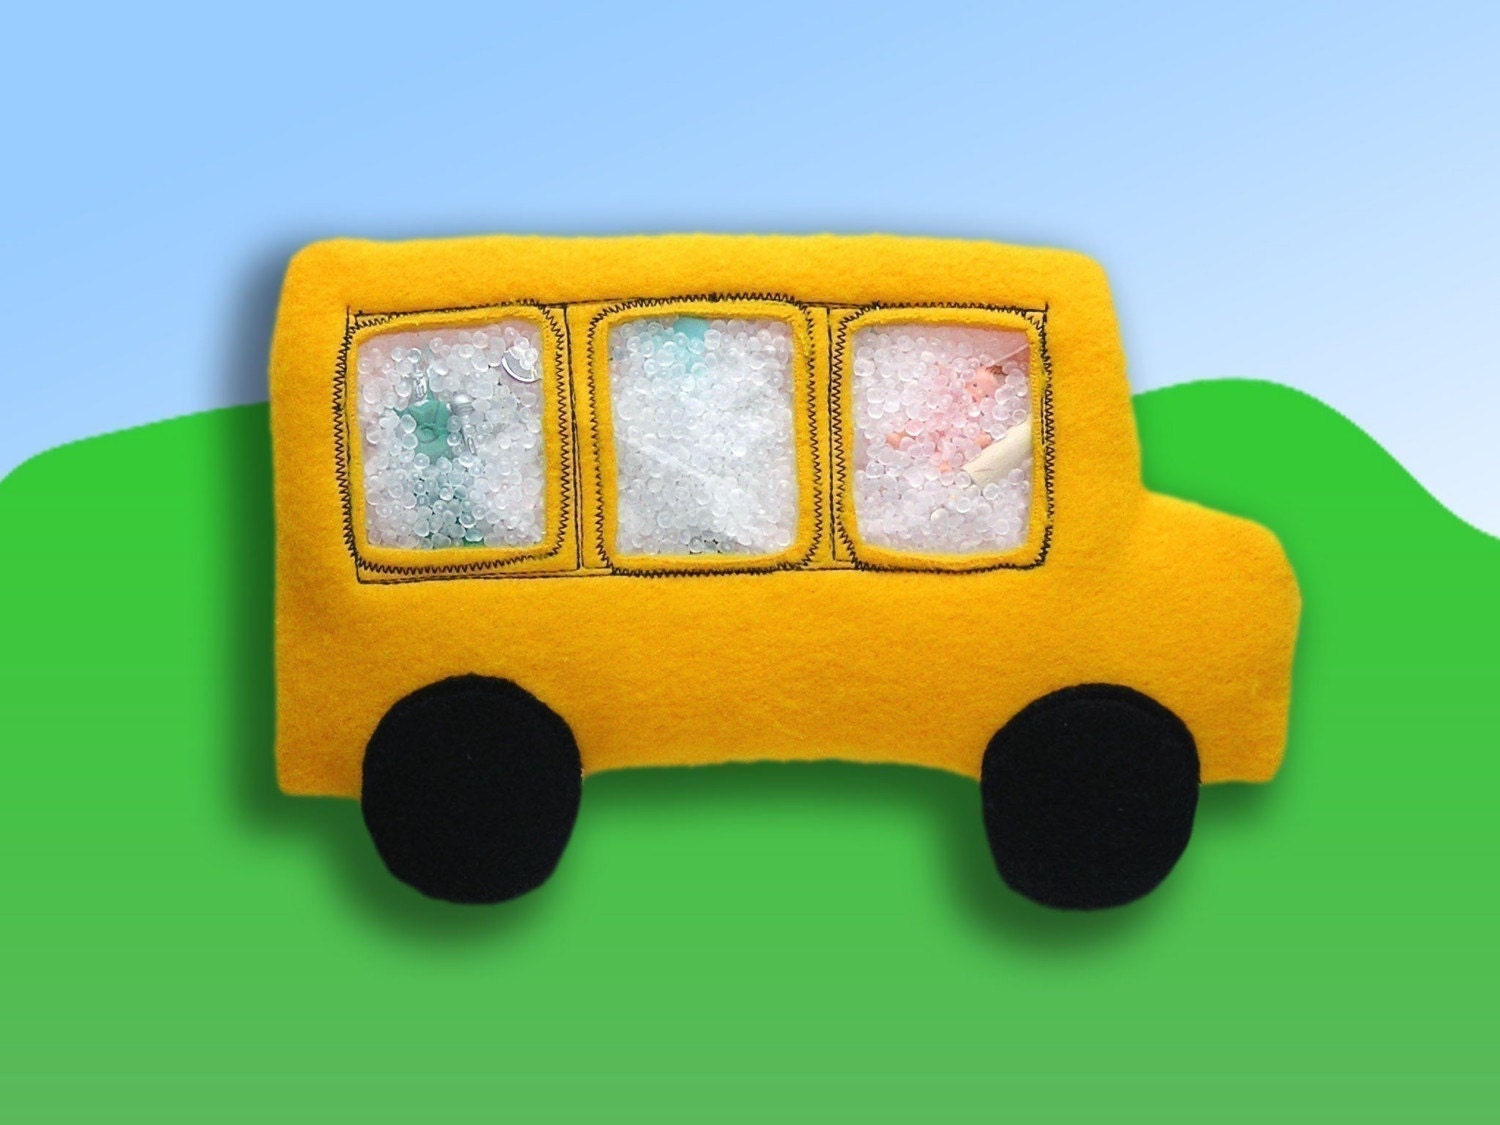 School Bus I Spy Bag - The wheels on the bus go round and round designed for children who love the school bus whether they are old enough to ride or not